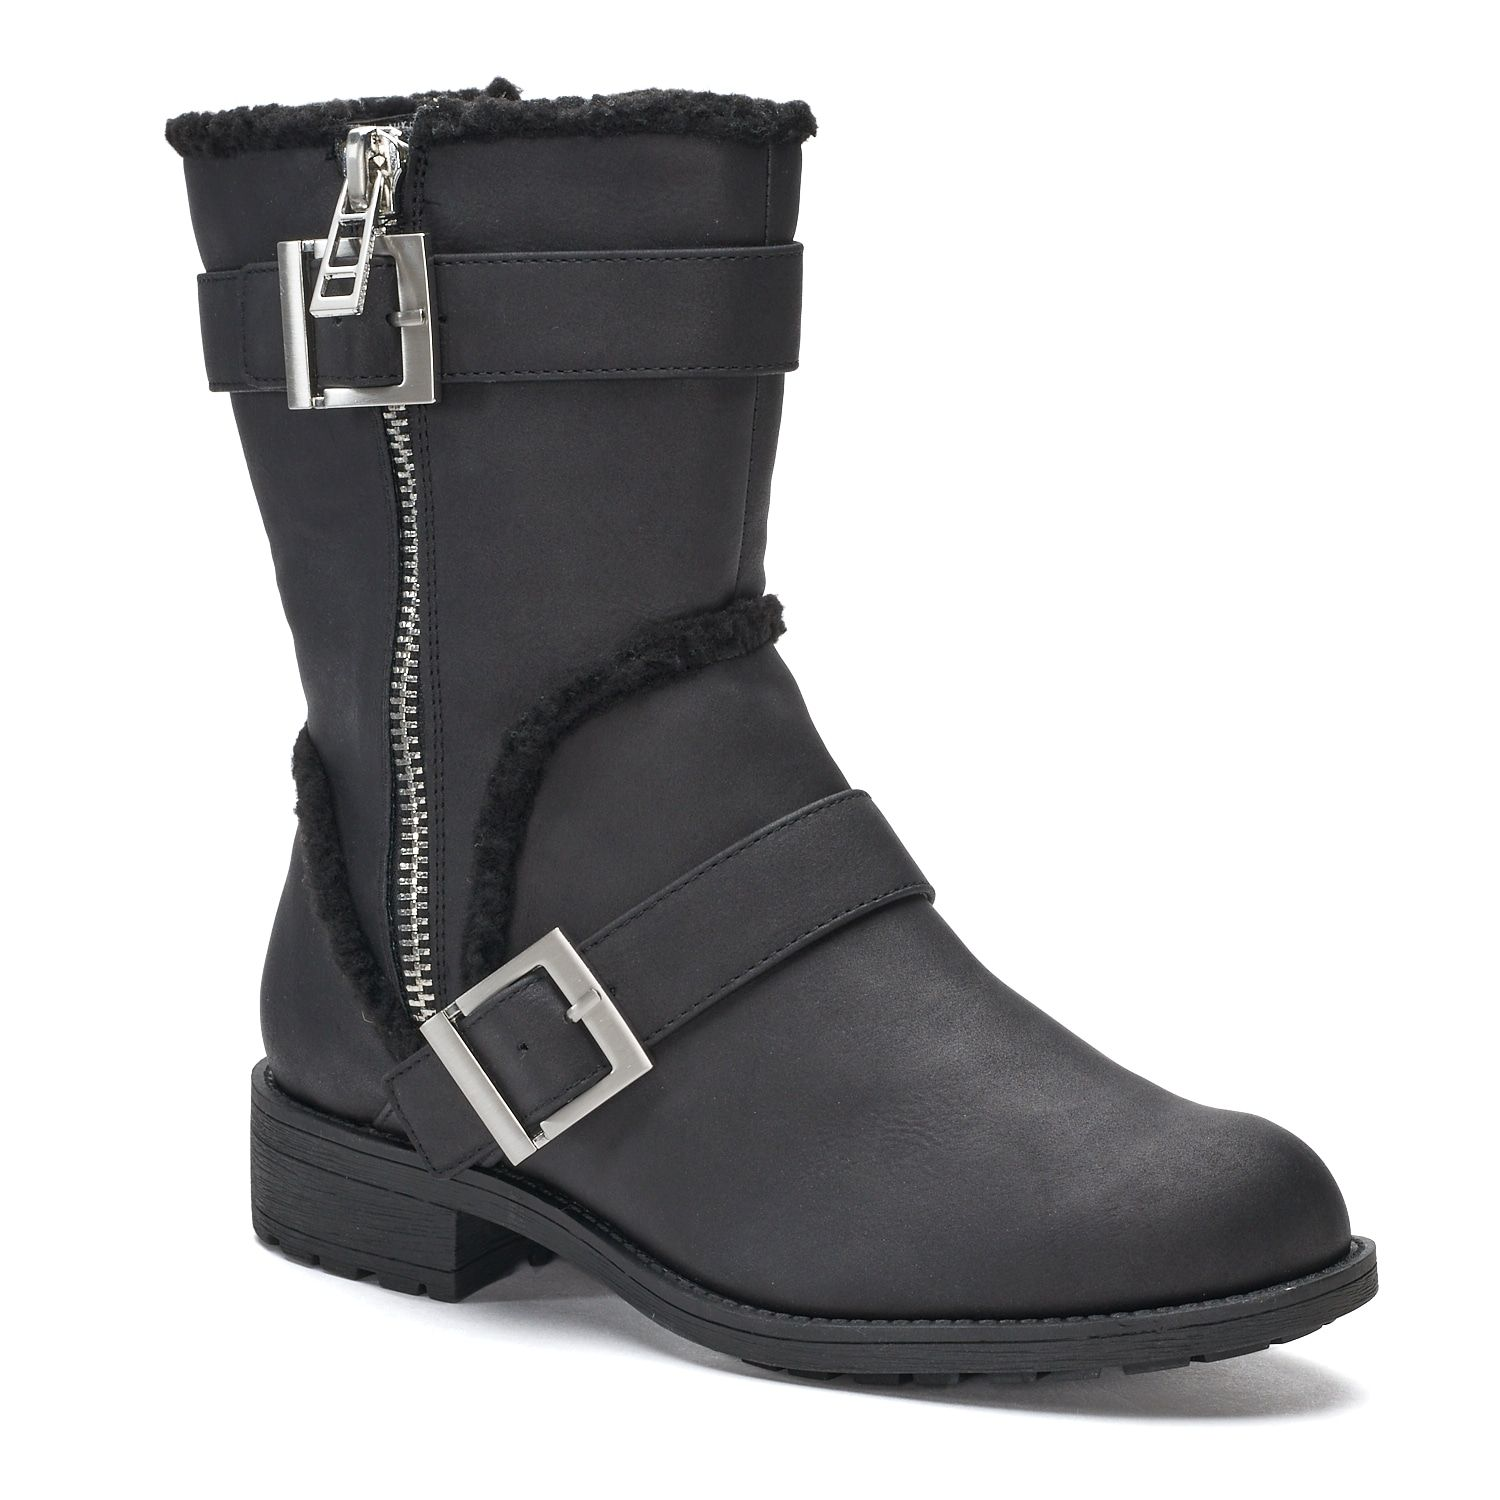 Style Charles by Charles David ... Carl Women's Winter Boots